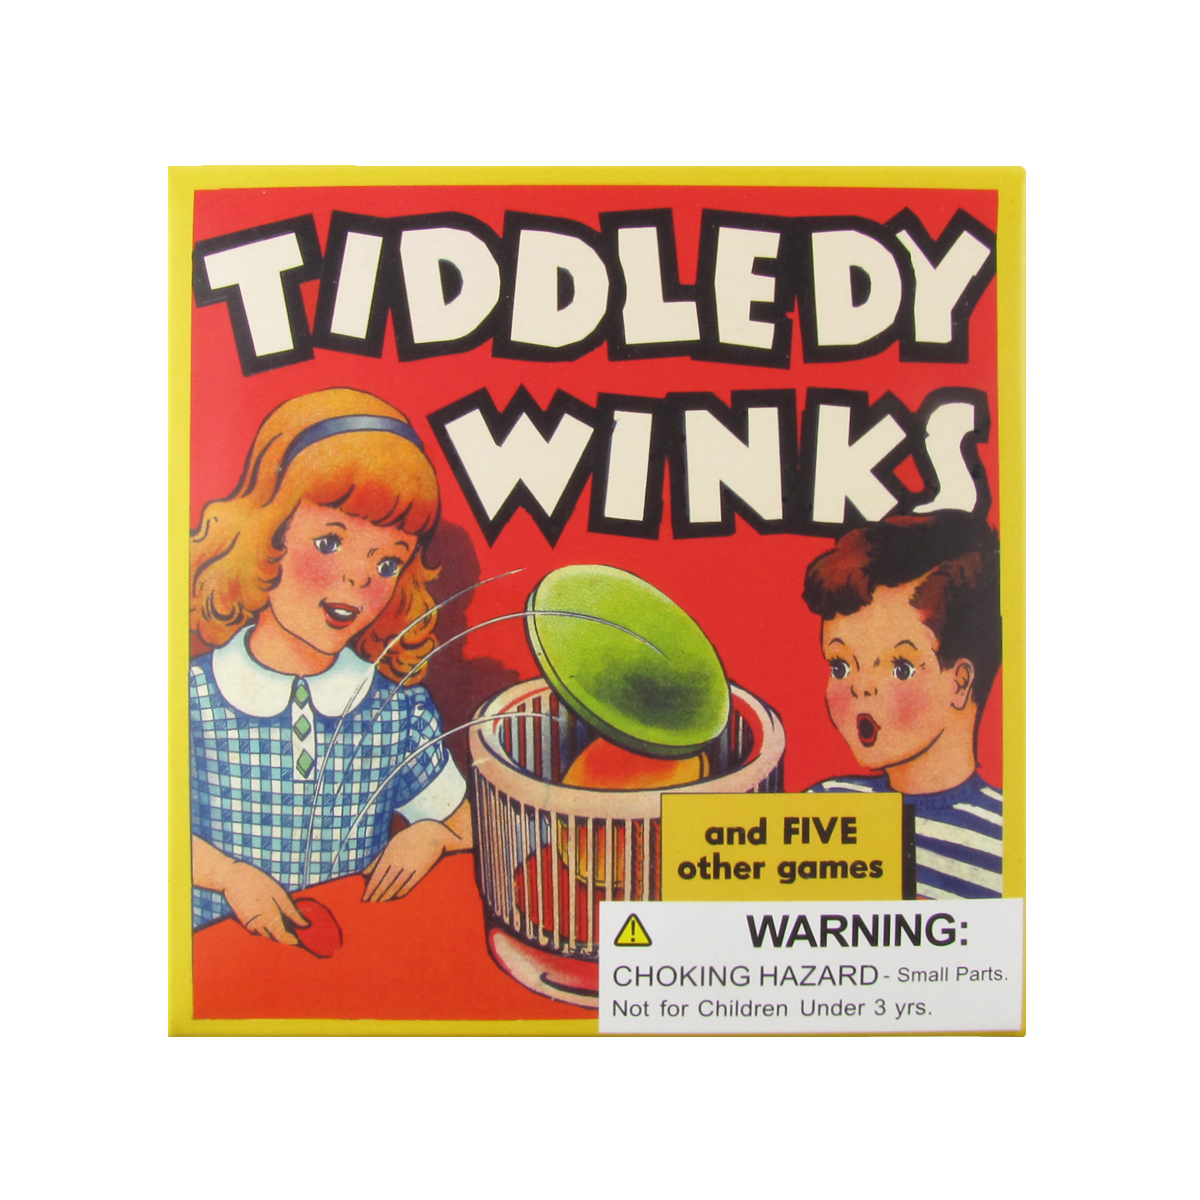 Retro Packaging Classic Board Game of Tiddllywinks Kids/Adults Fun Family Games